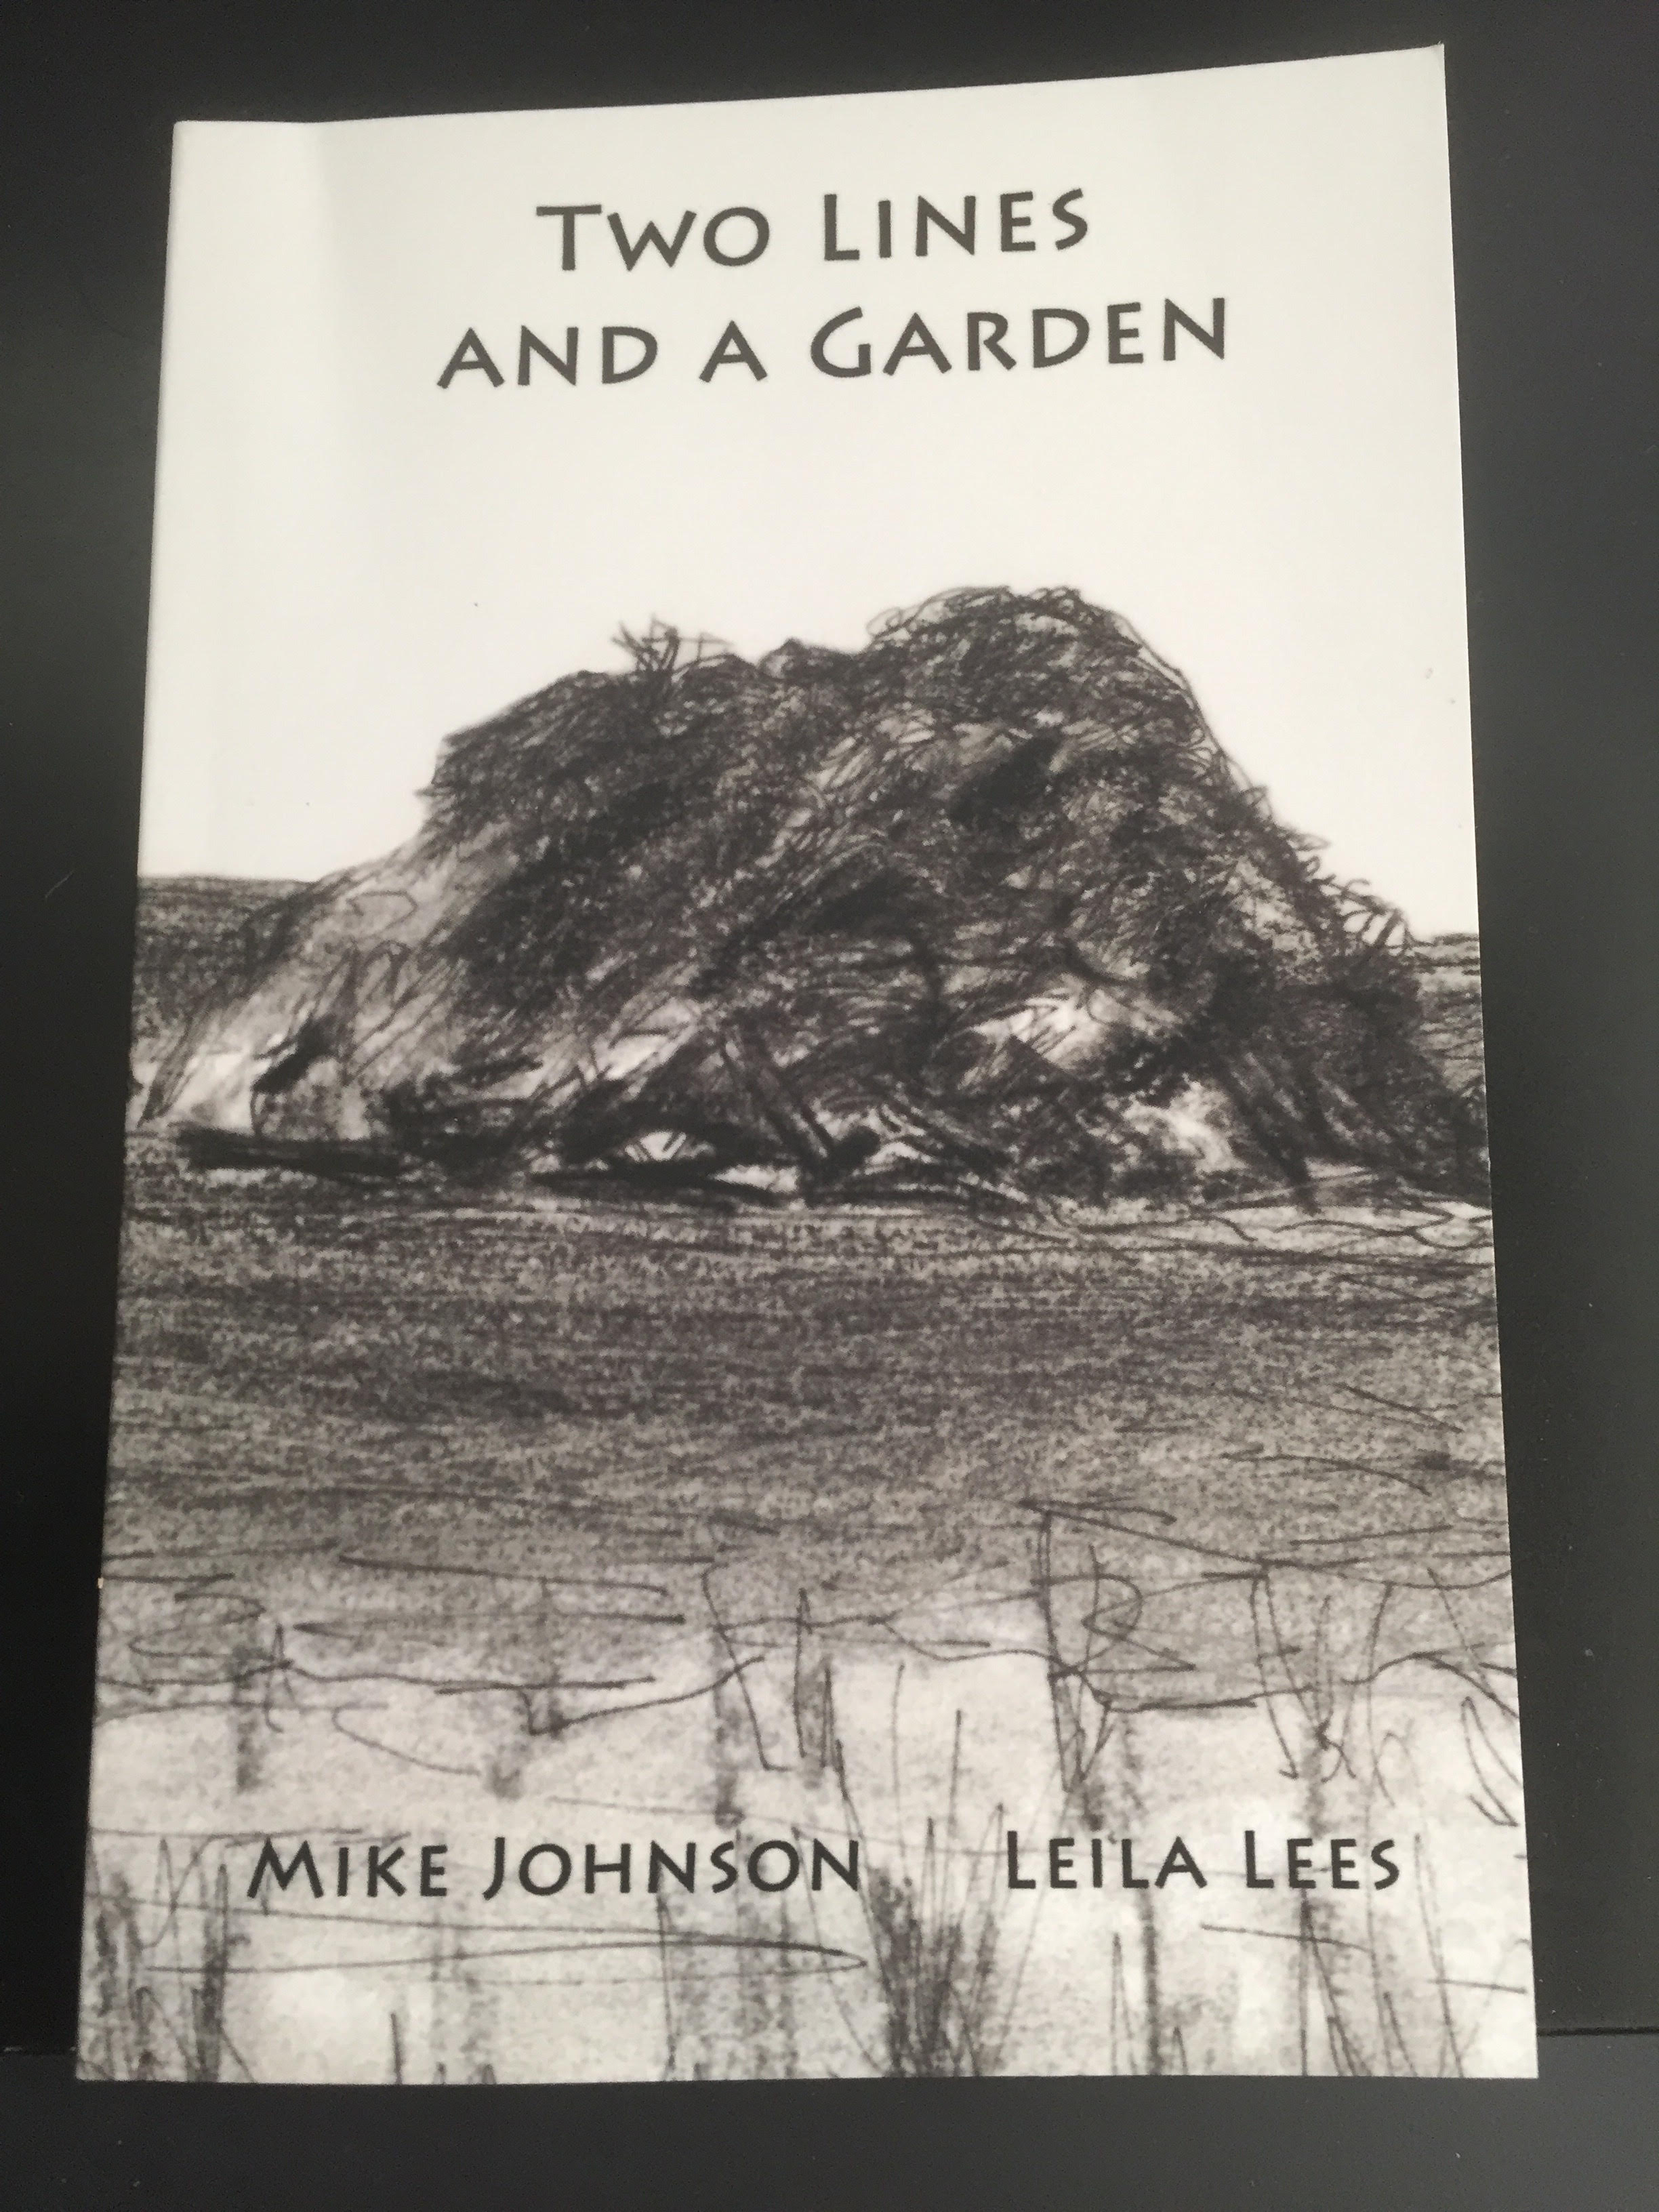 Two Lines and a Garden,     is a collection of poems.